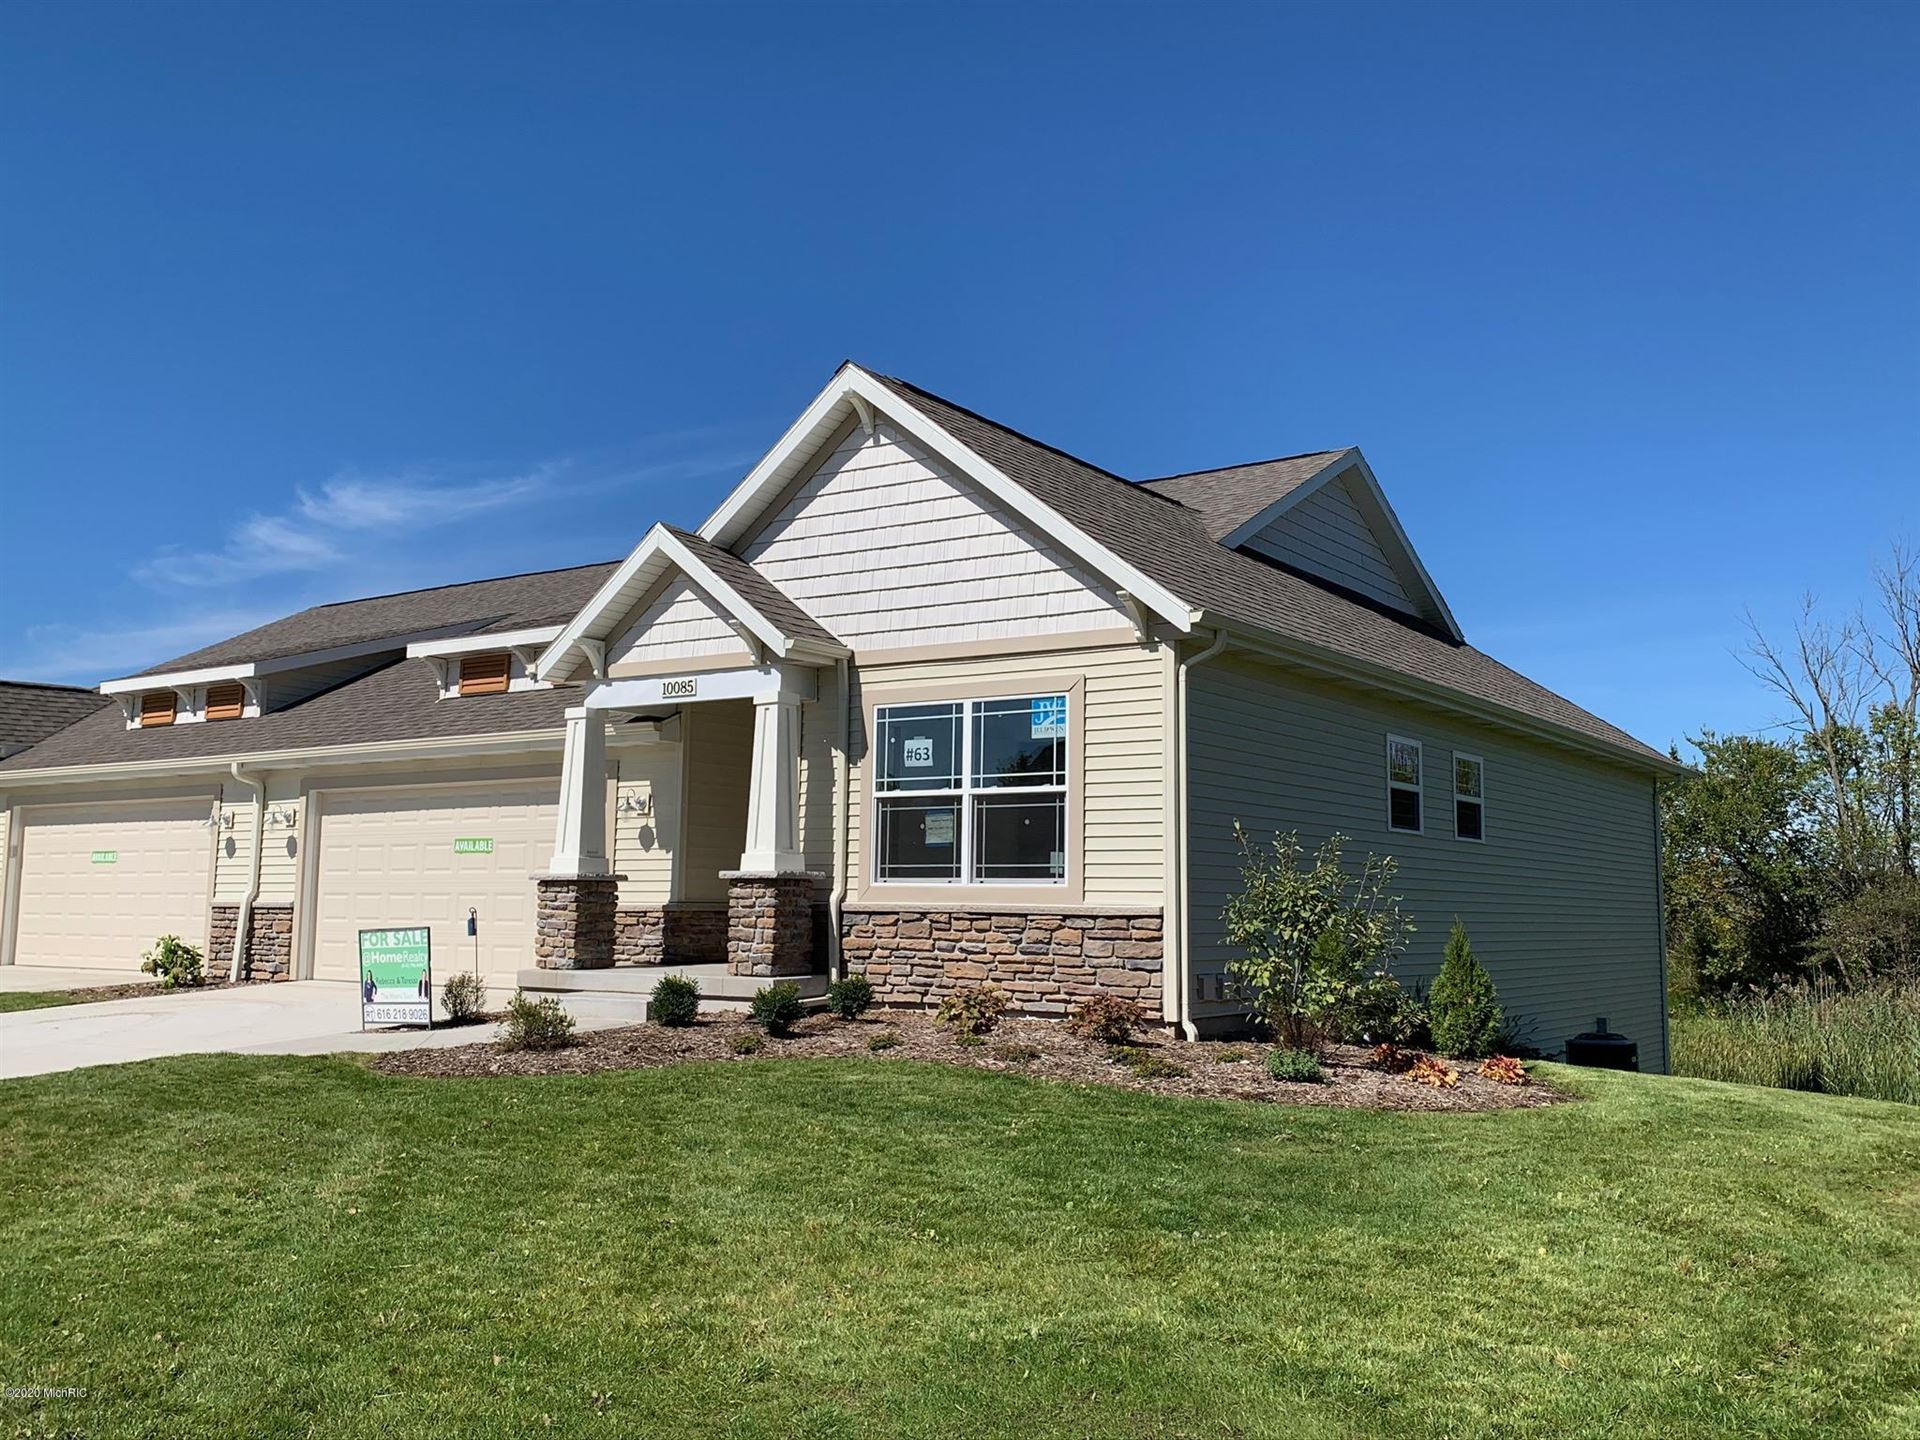 10085 Prairie Grass Court #63, Zeeland, MI 49464 - MLS#: 20013912